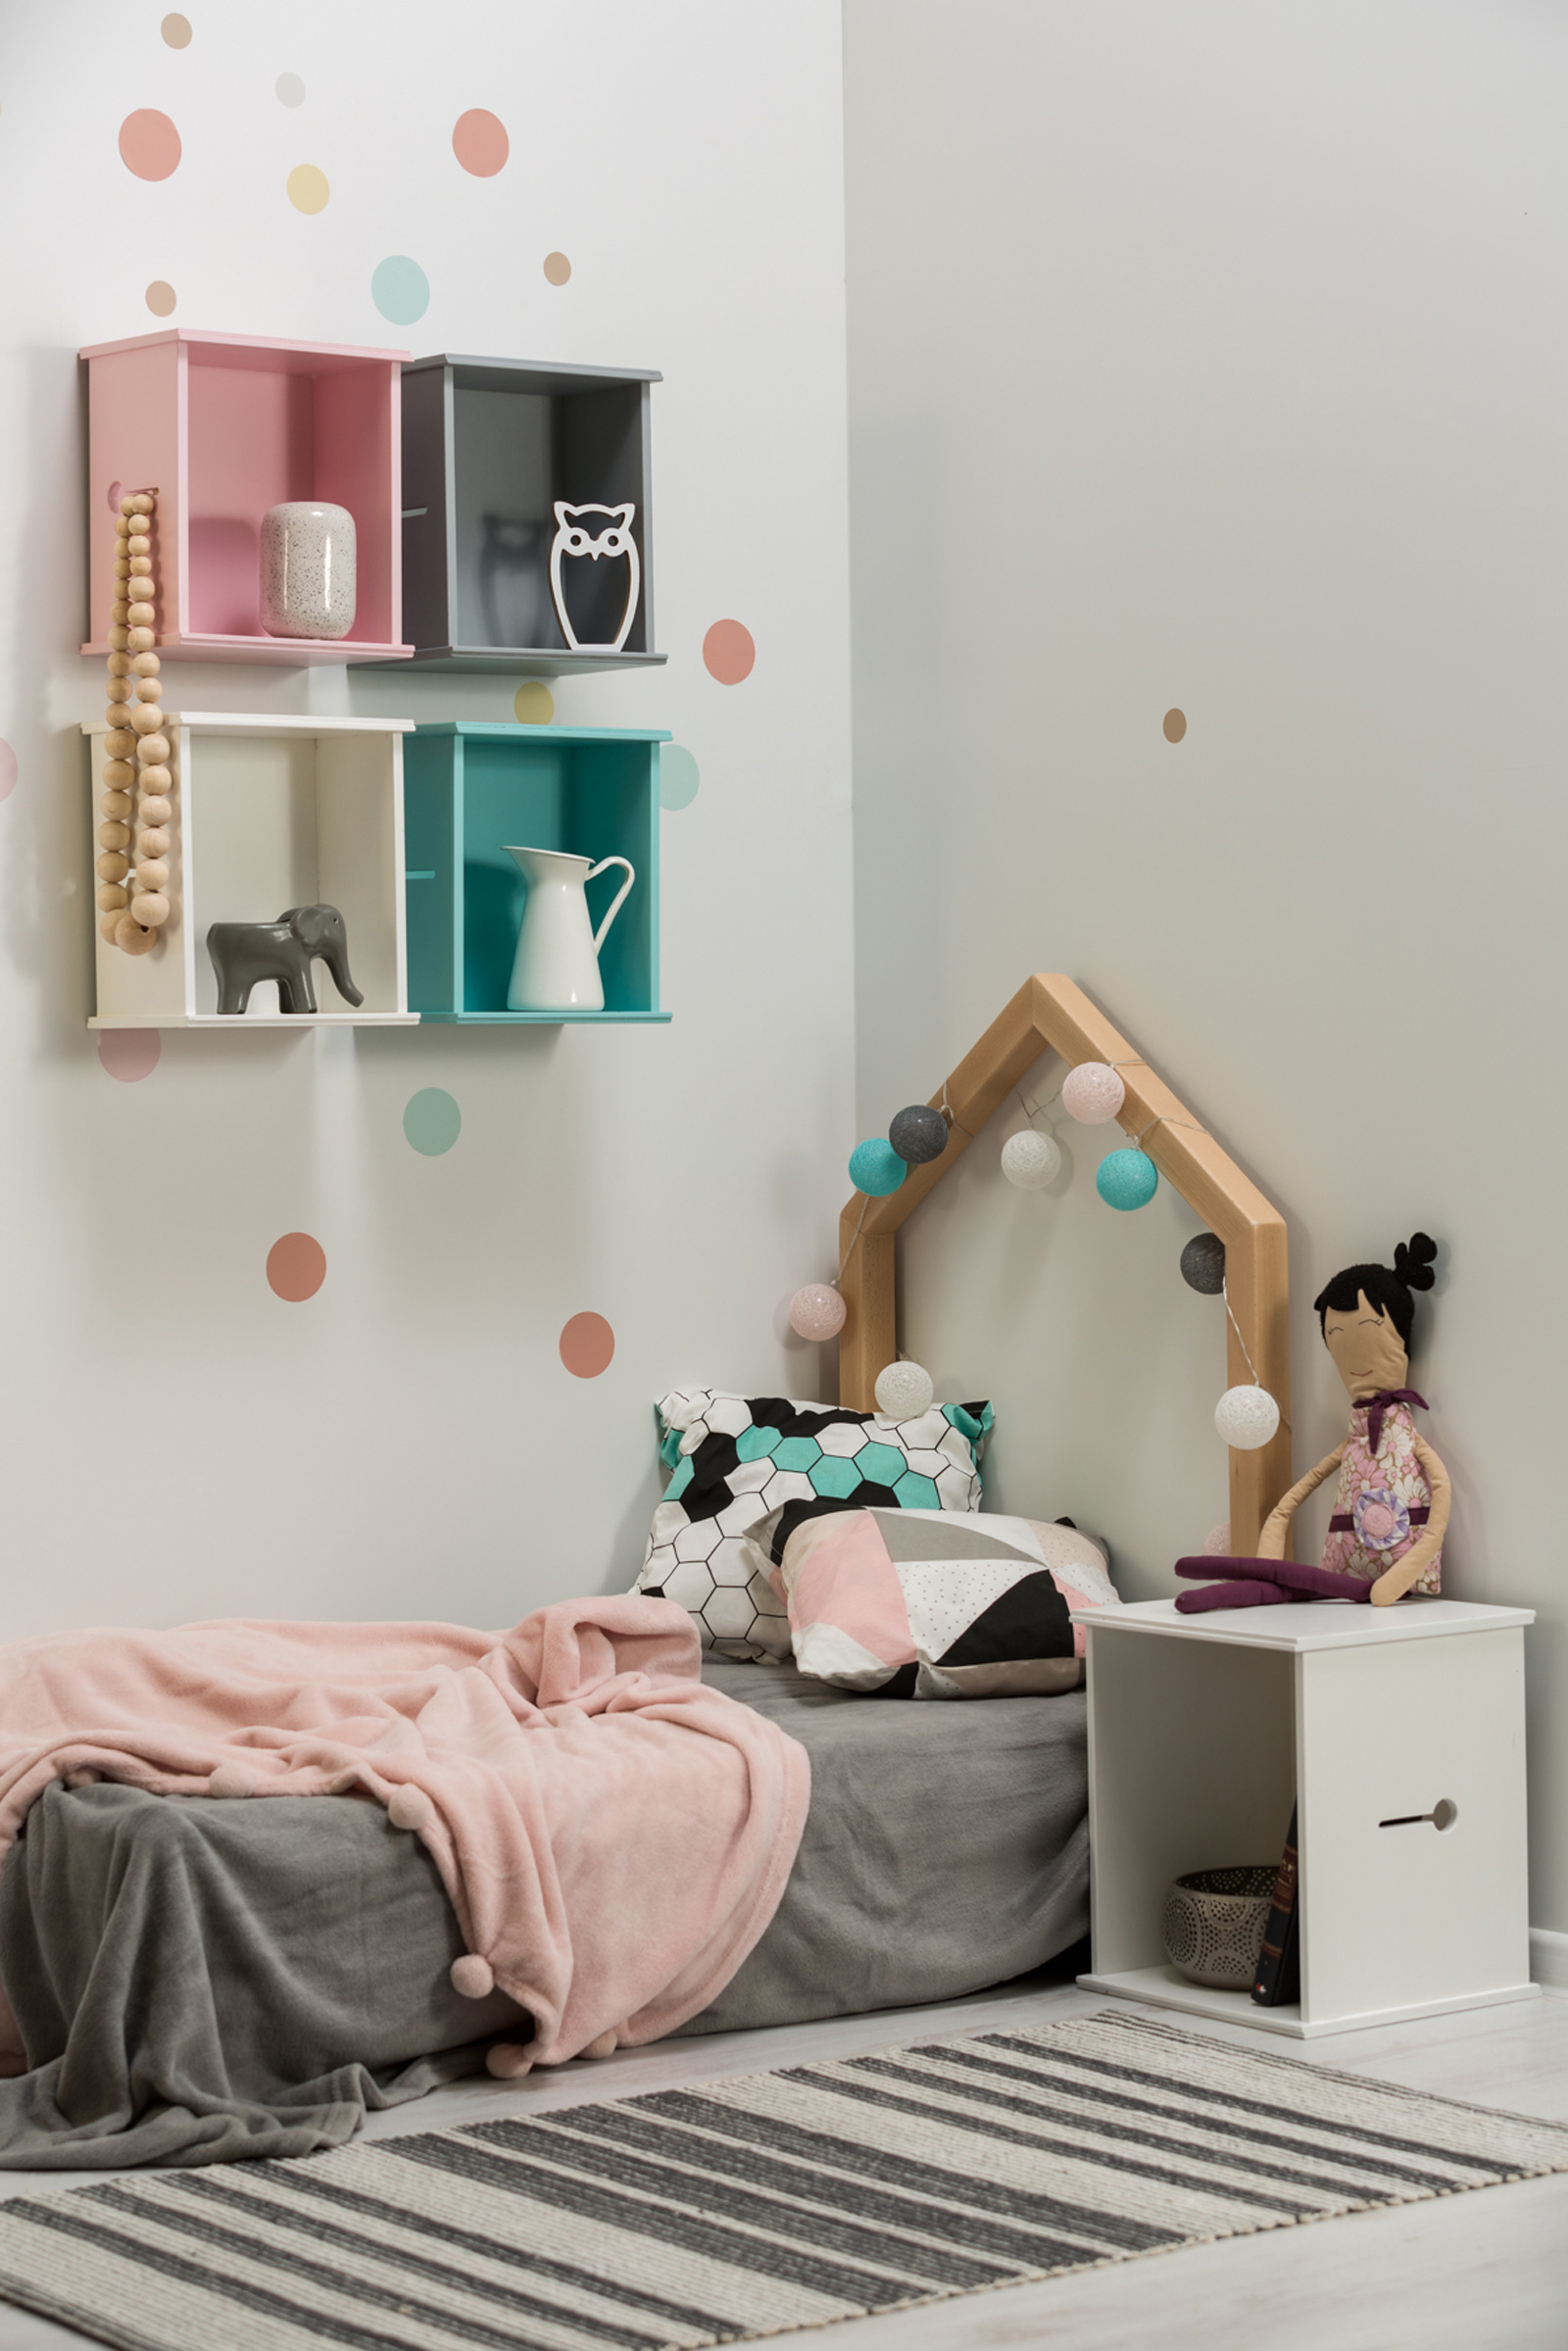 Montessori kids furniture from Europe